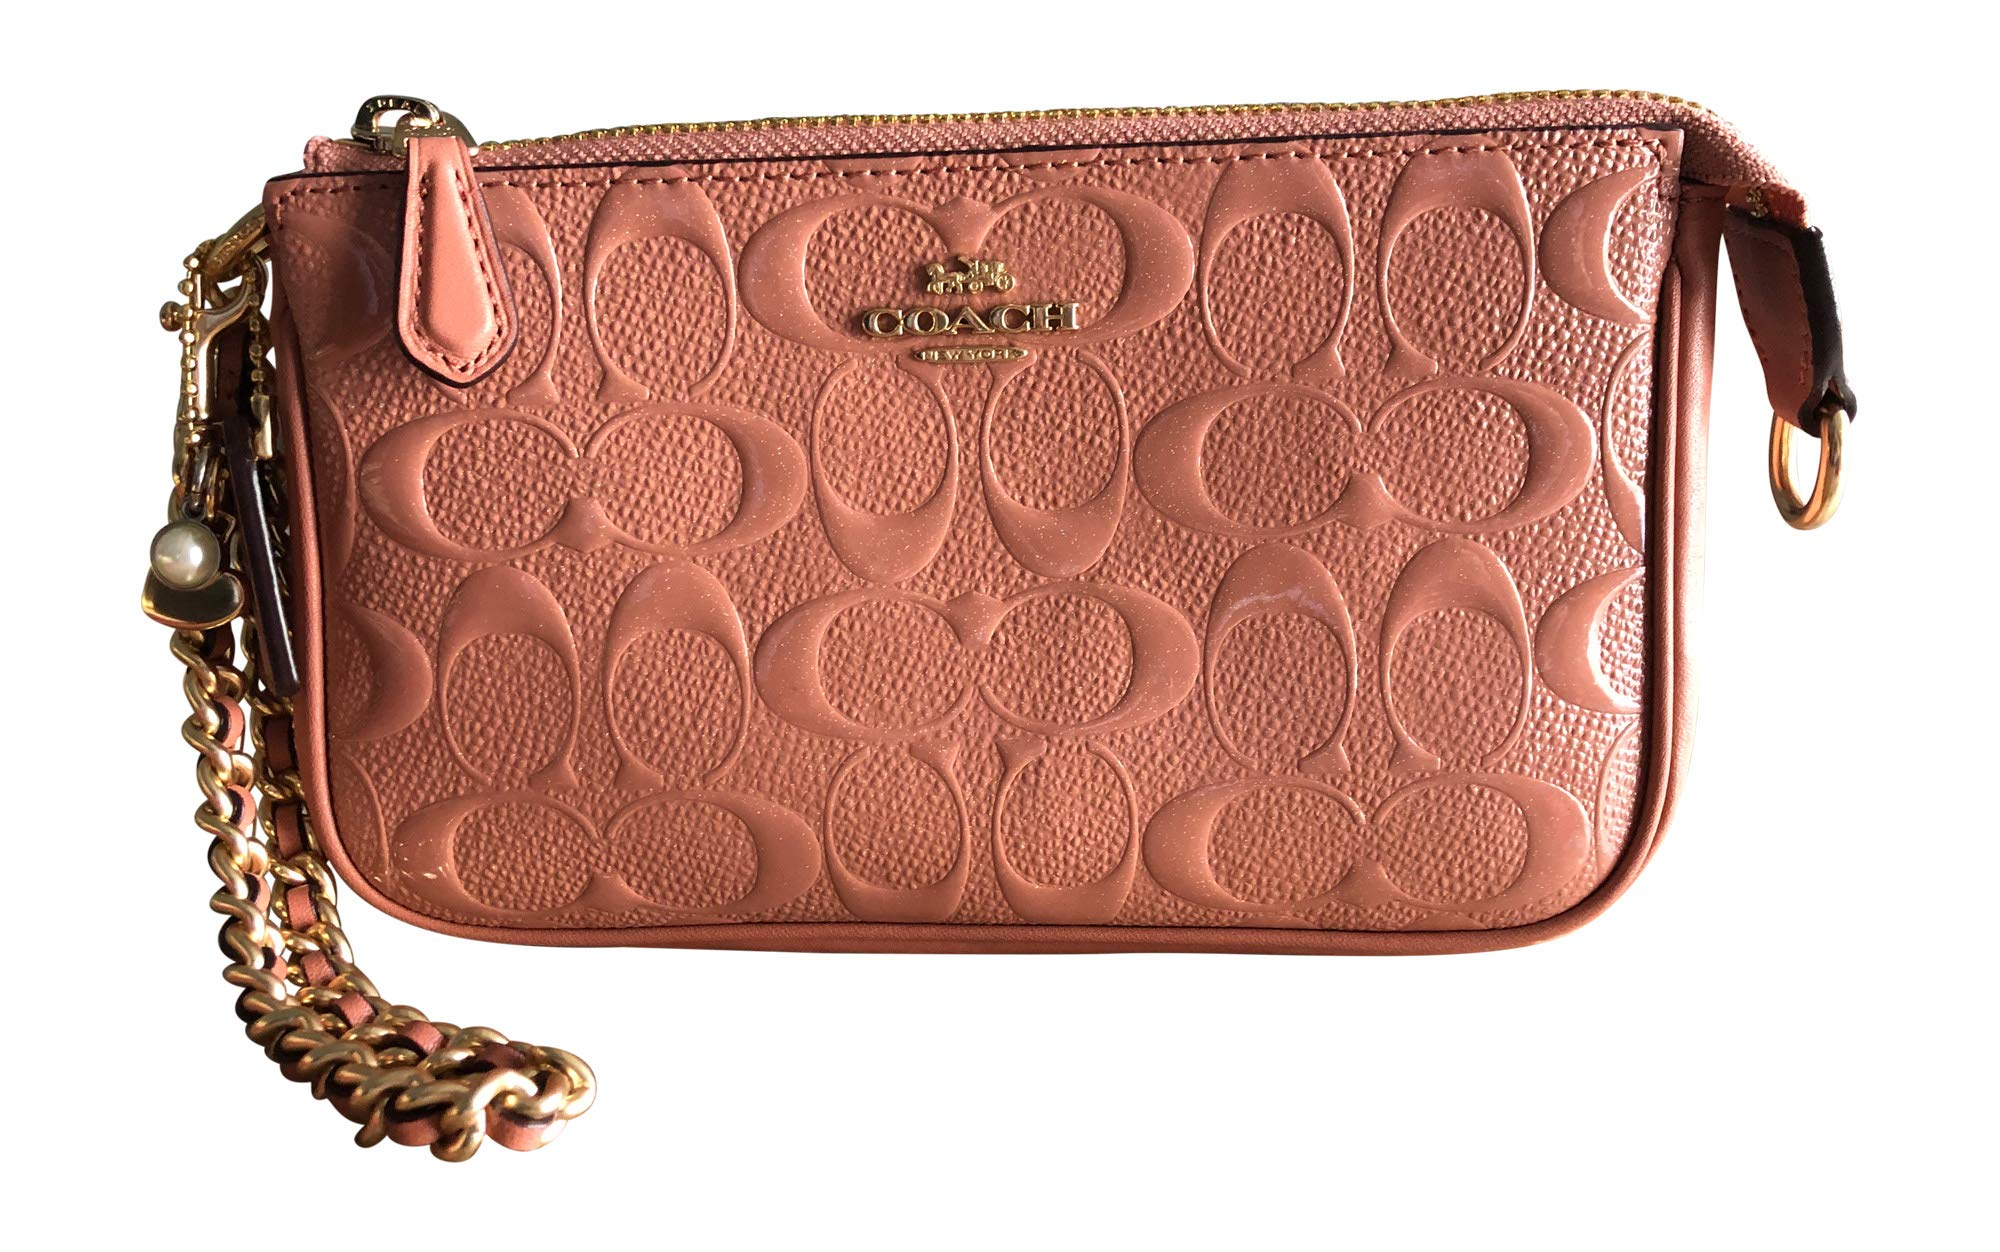 COACH F22698 LARGE WRISTLET 19 IN SIGNATURE LEATHER WITH CHAIN